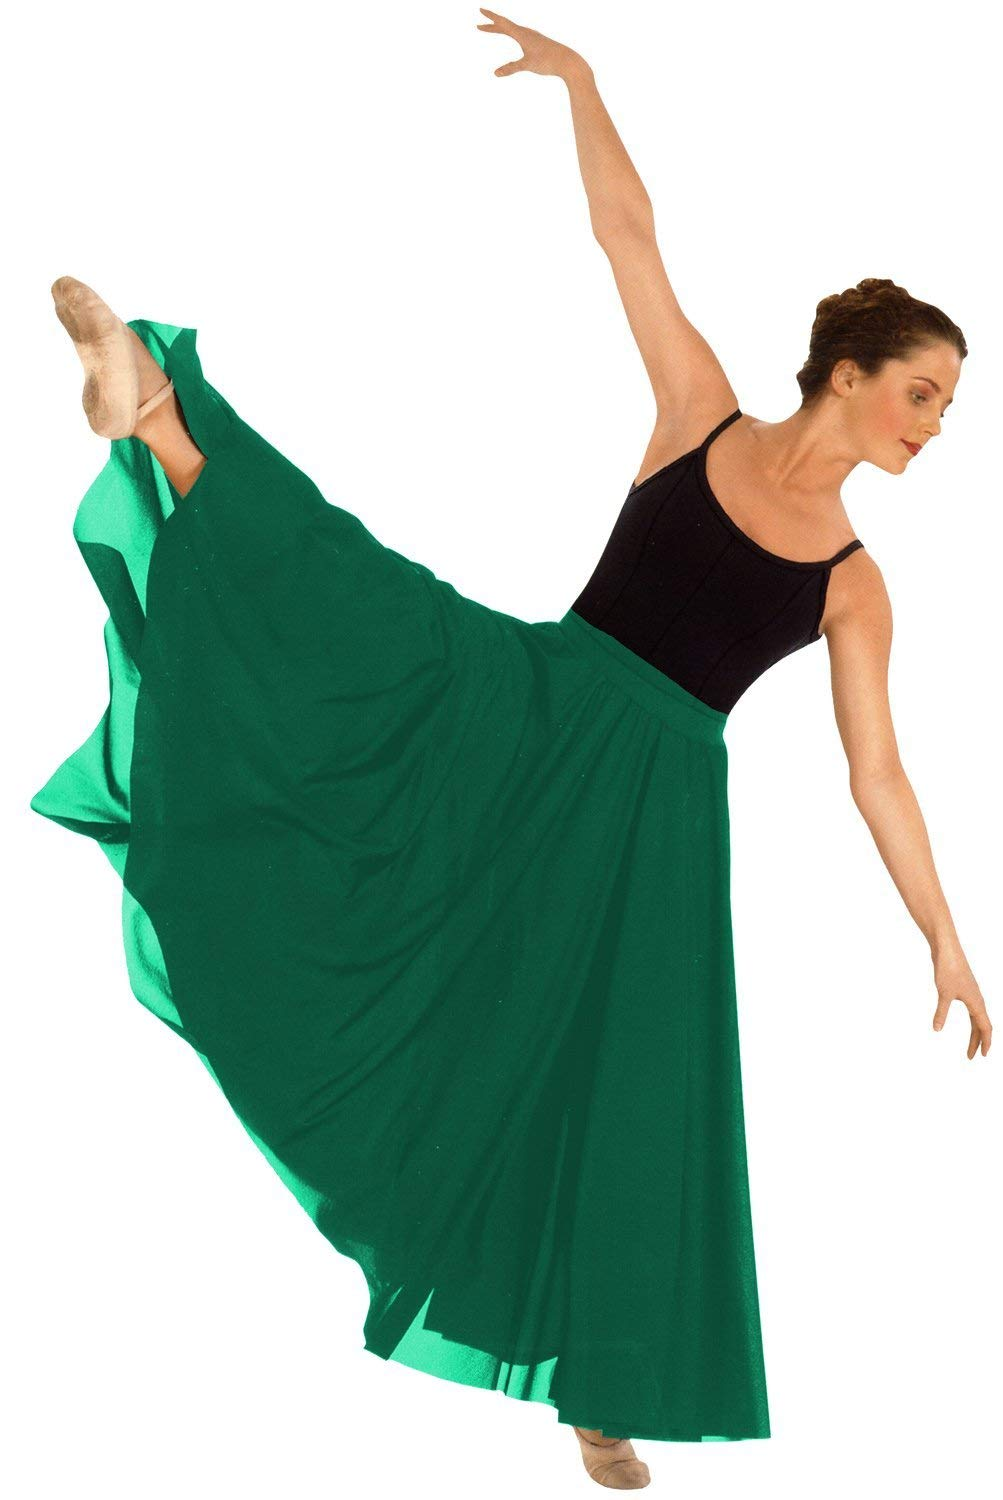 Eurotard 13674 Adult Triple Panel Lyrical Skirt,Green,One Size Fits All by Eurotard